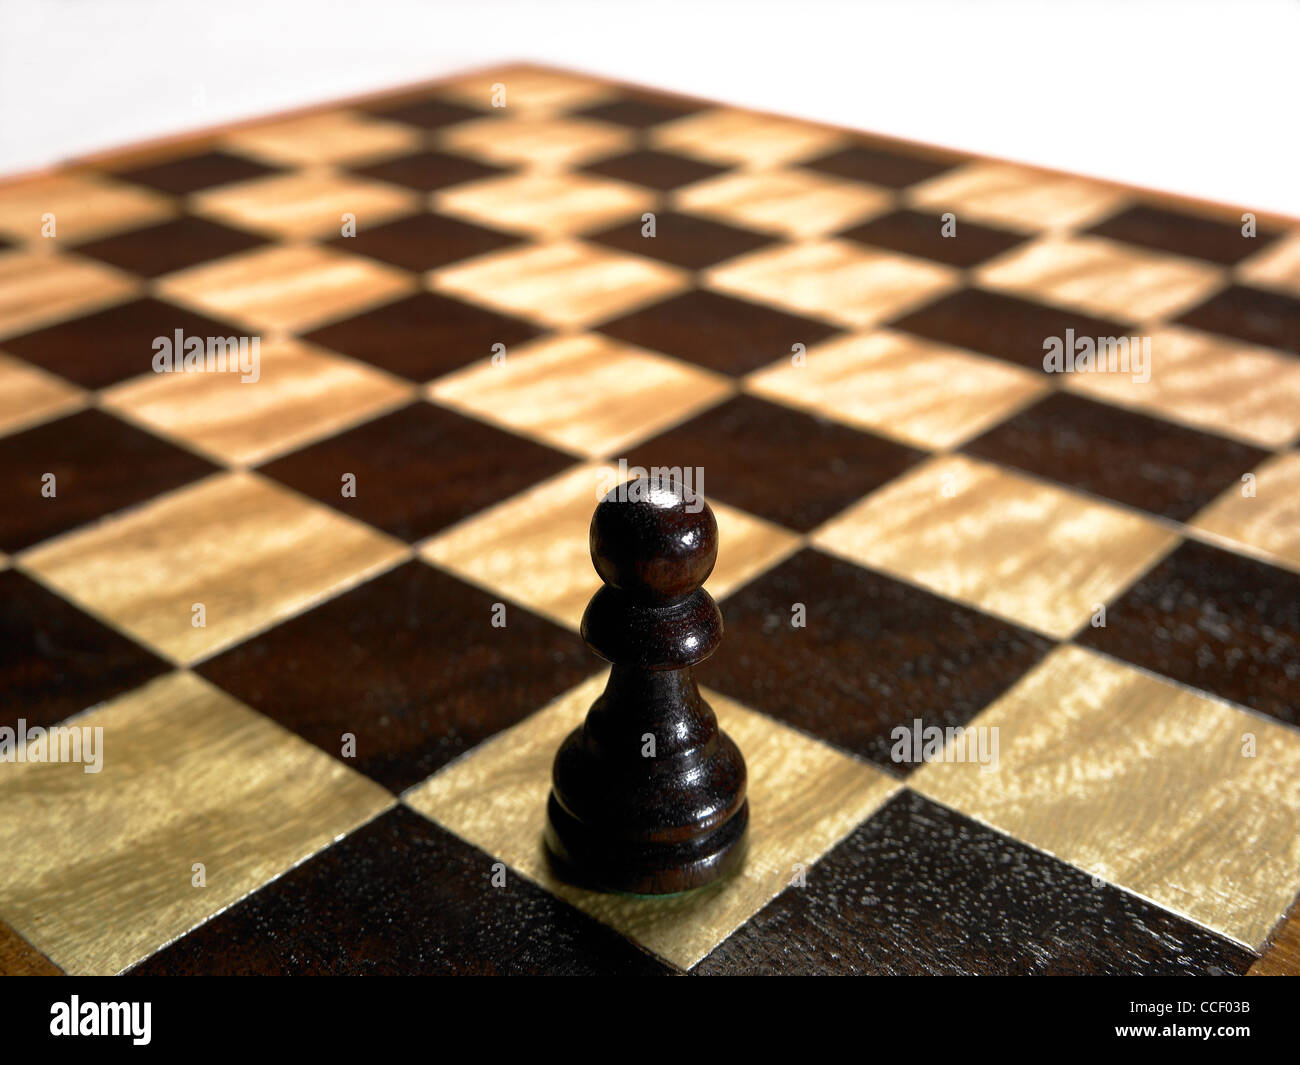 A pawn chess piece on an empty chessboard - Stock Image